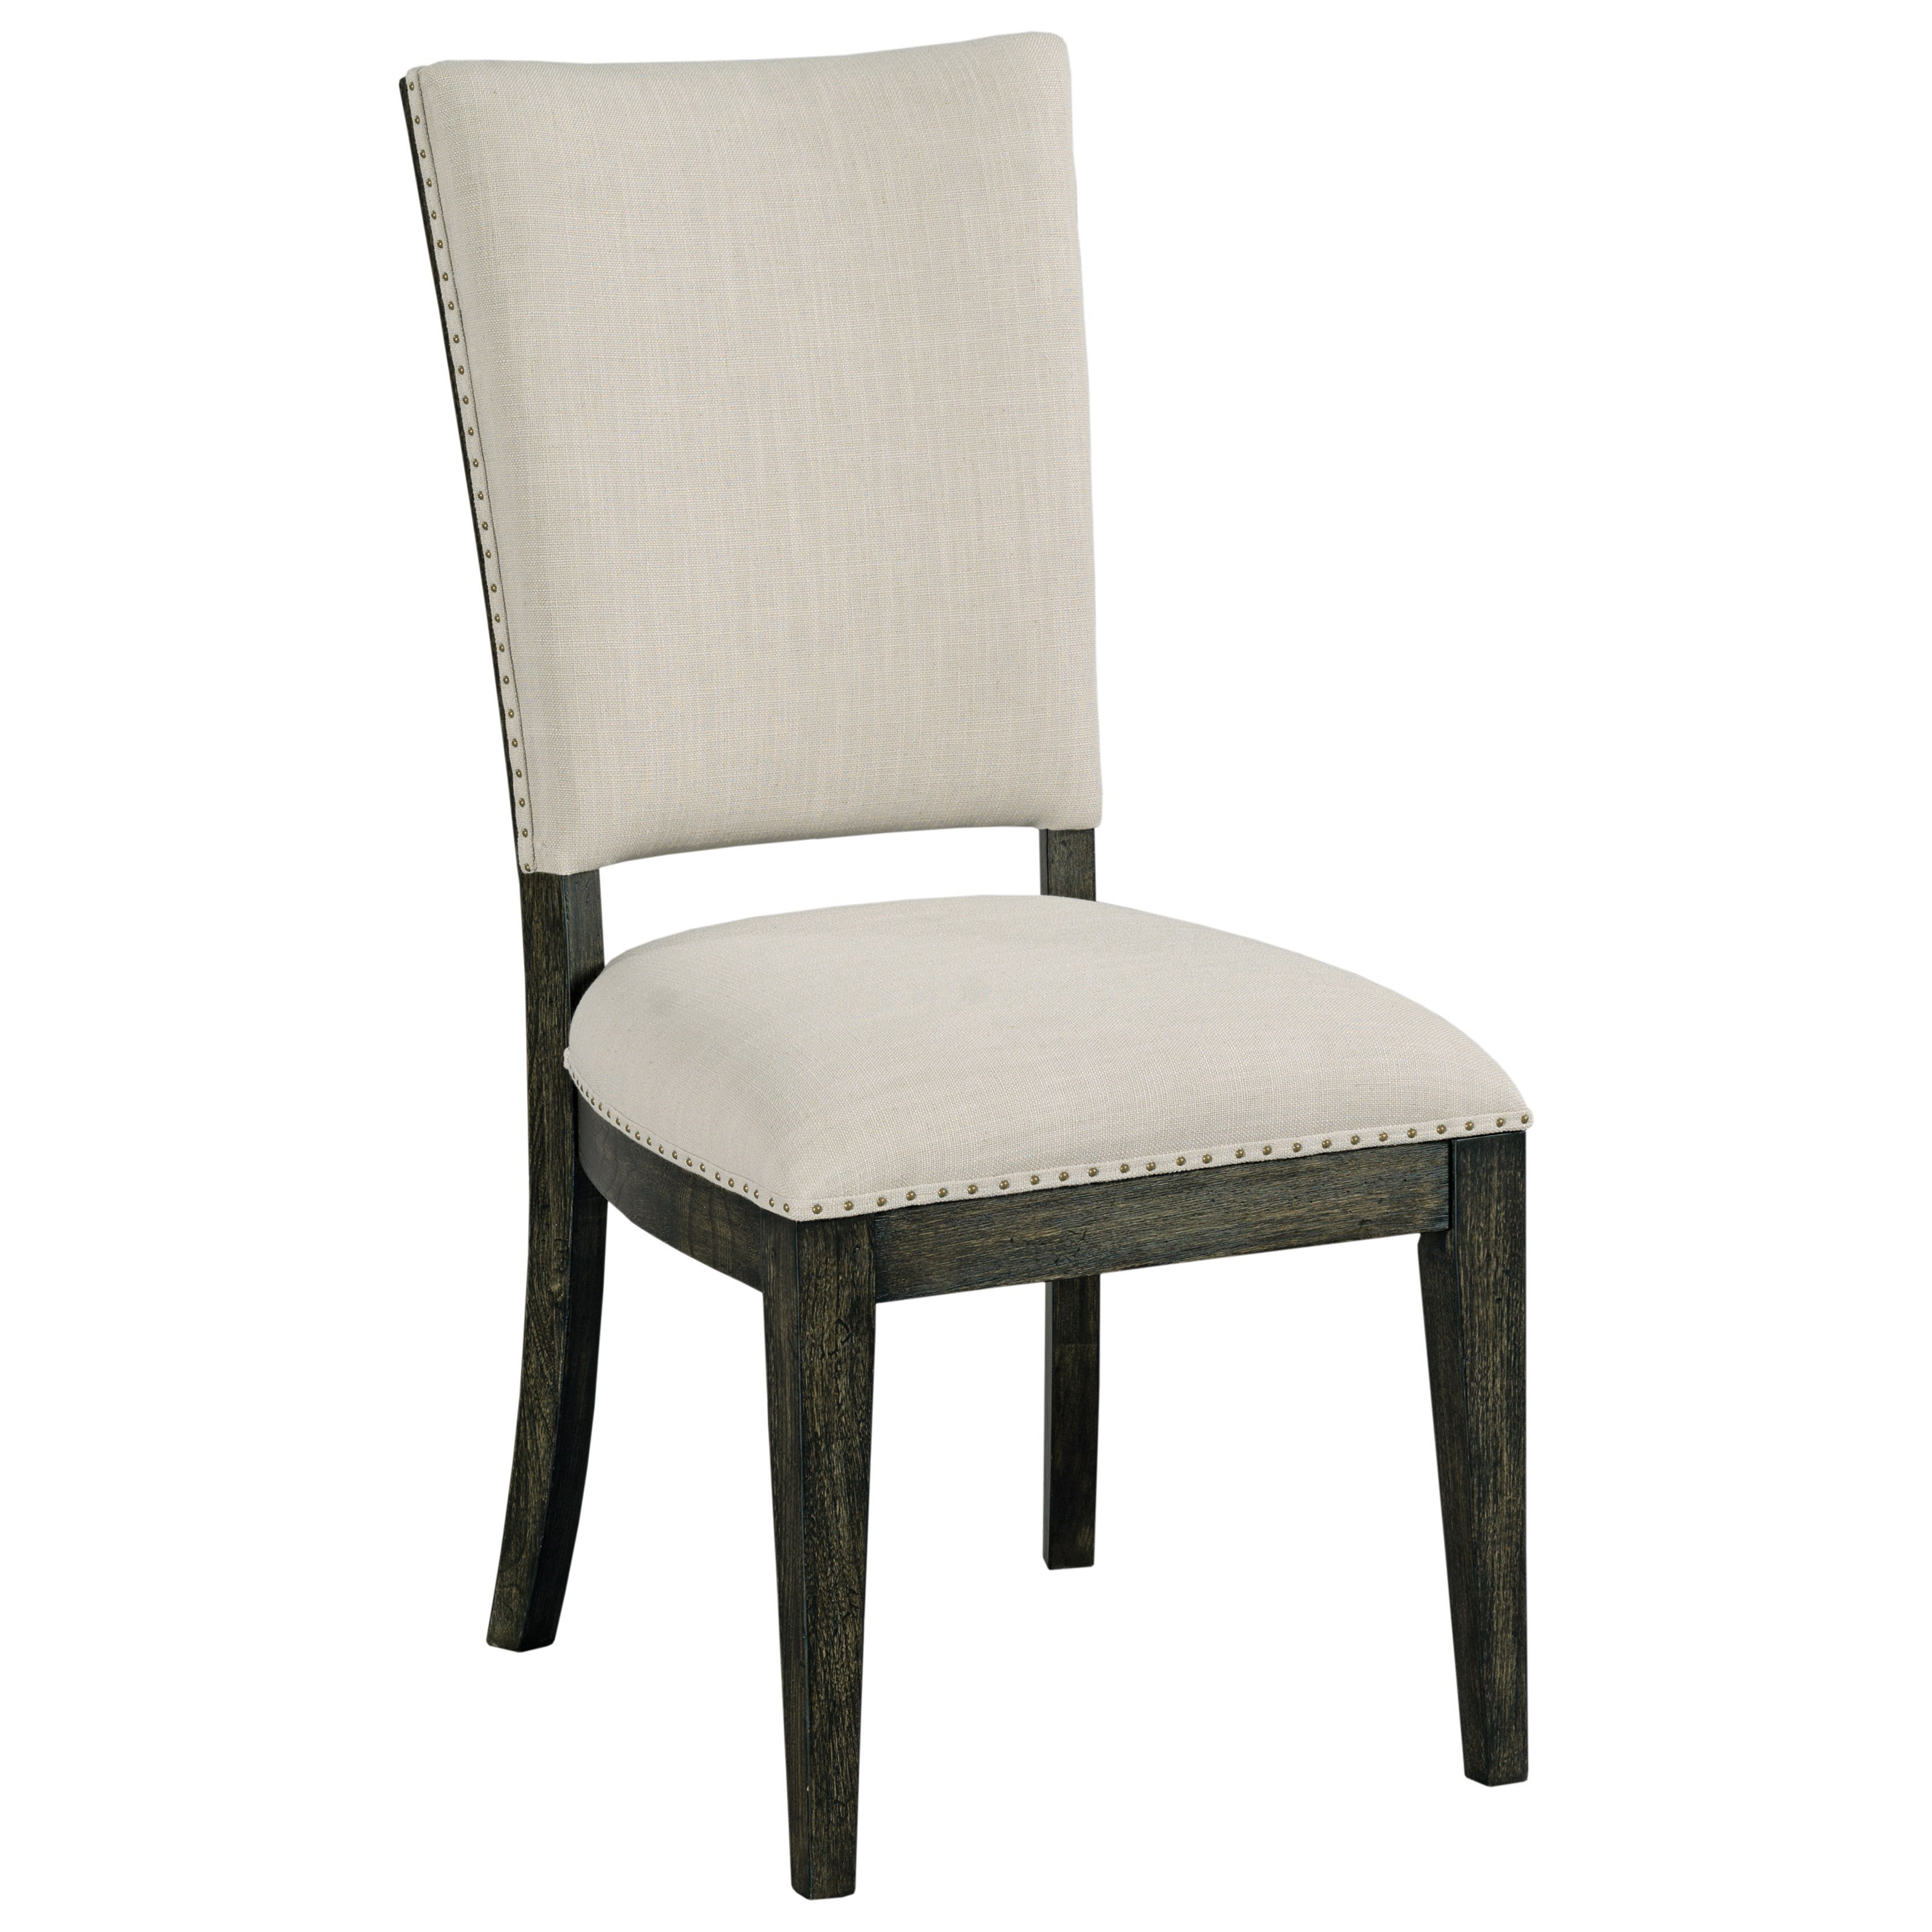 Plank Road Howell Side Chair                            by Kincaid Furniture at Johnny Janosik